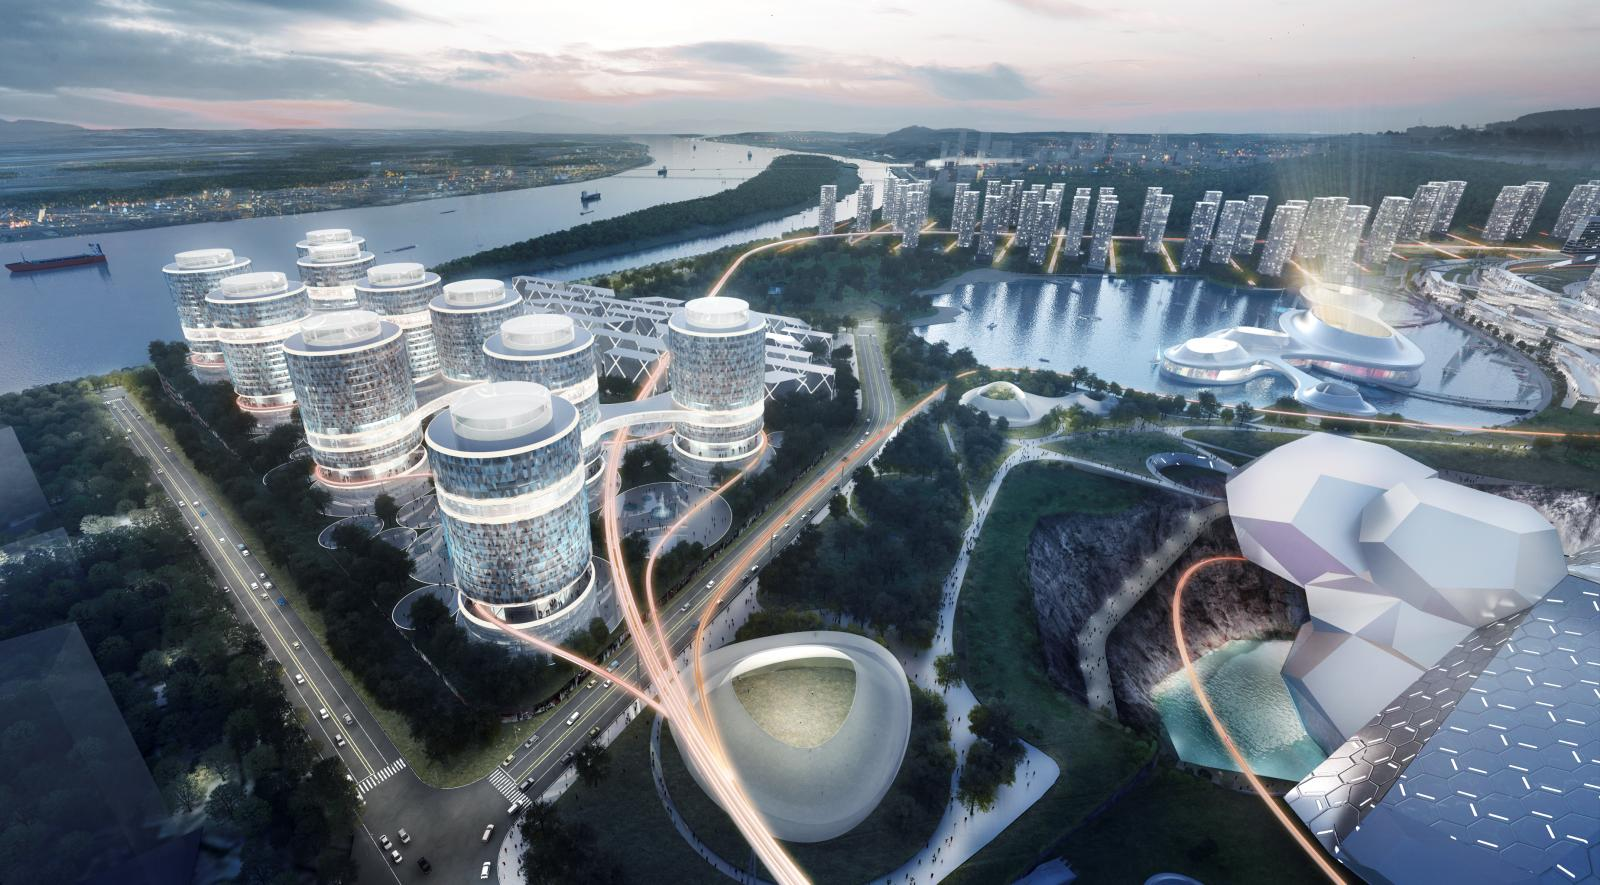 The Changsha Eco Tech City